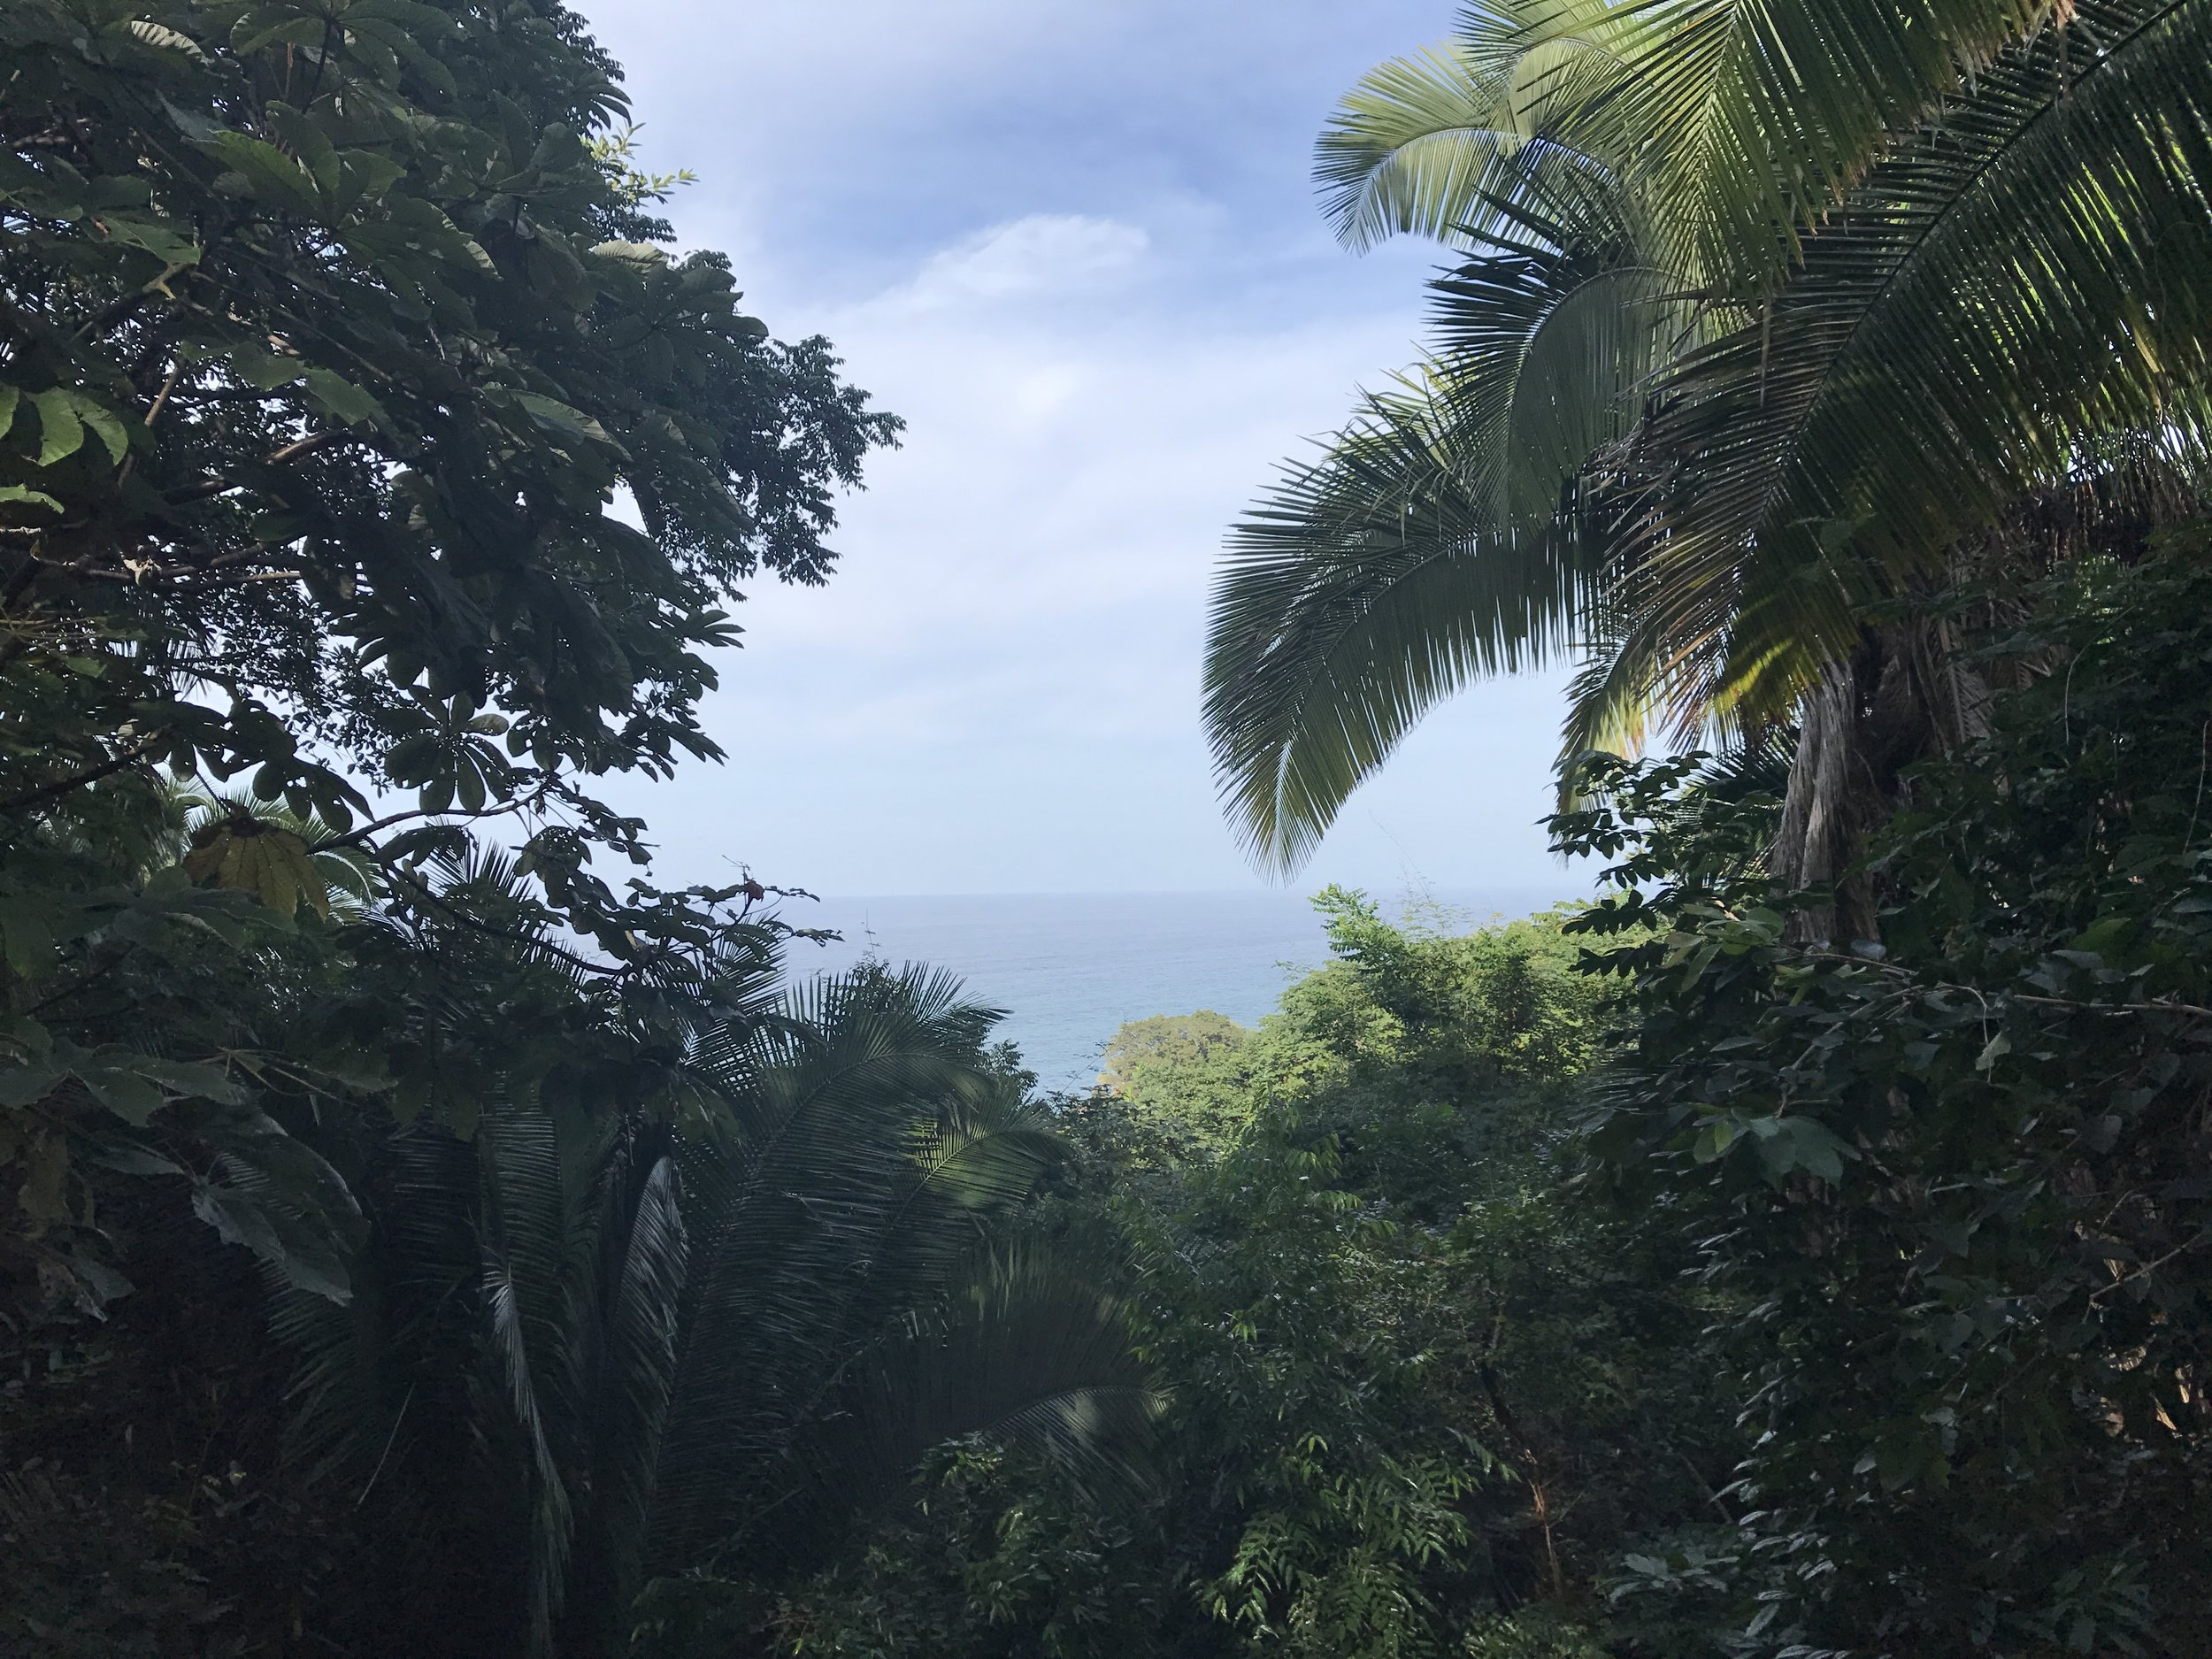 This is the view from our Casita at Tail Wind Jungle Lodge. The image below is a painting I started, inspired by this view.